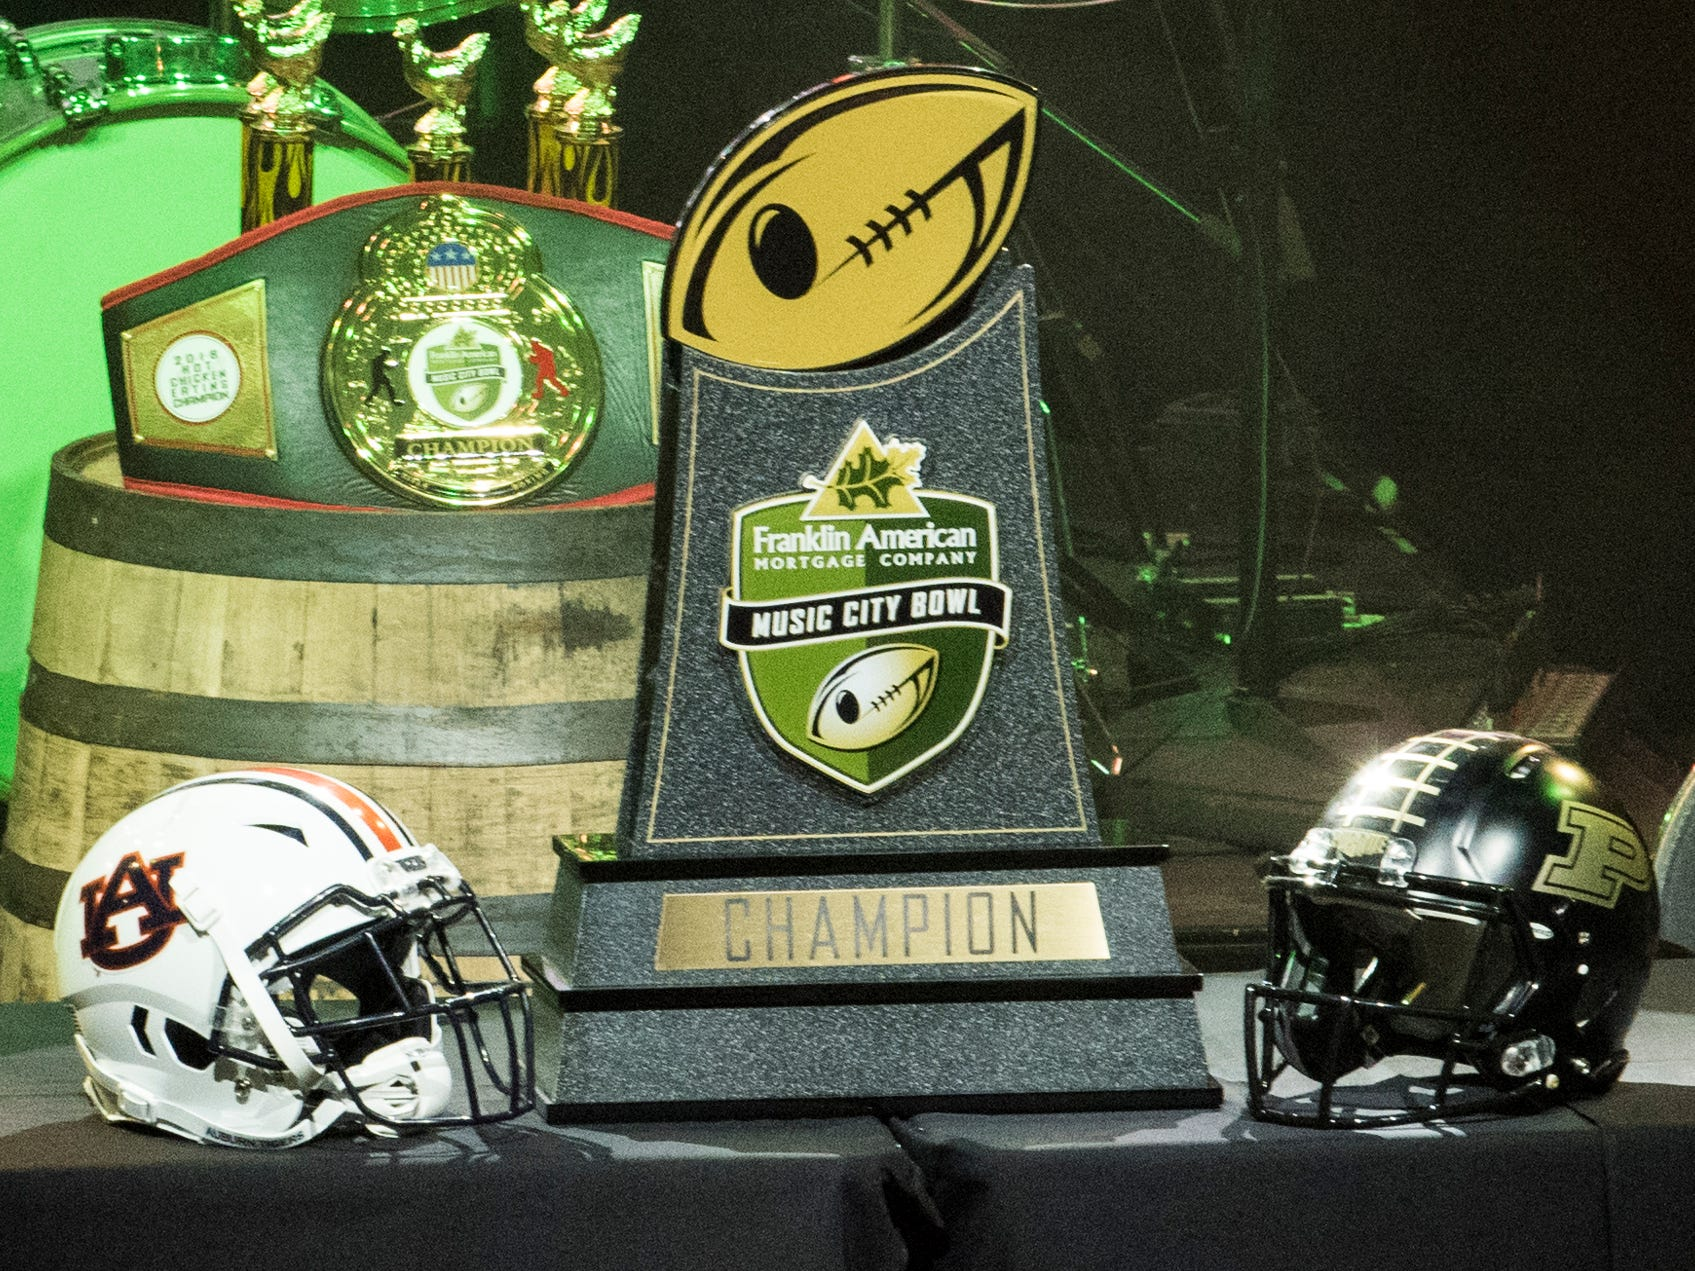 The Music City Bowl trophy at Wild Horse Saloon in Nashville, Ten., on Wednesday, Dec. 26, 2018.